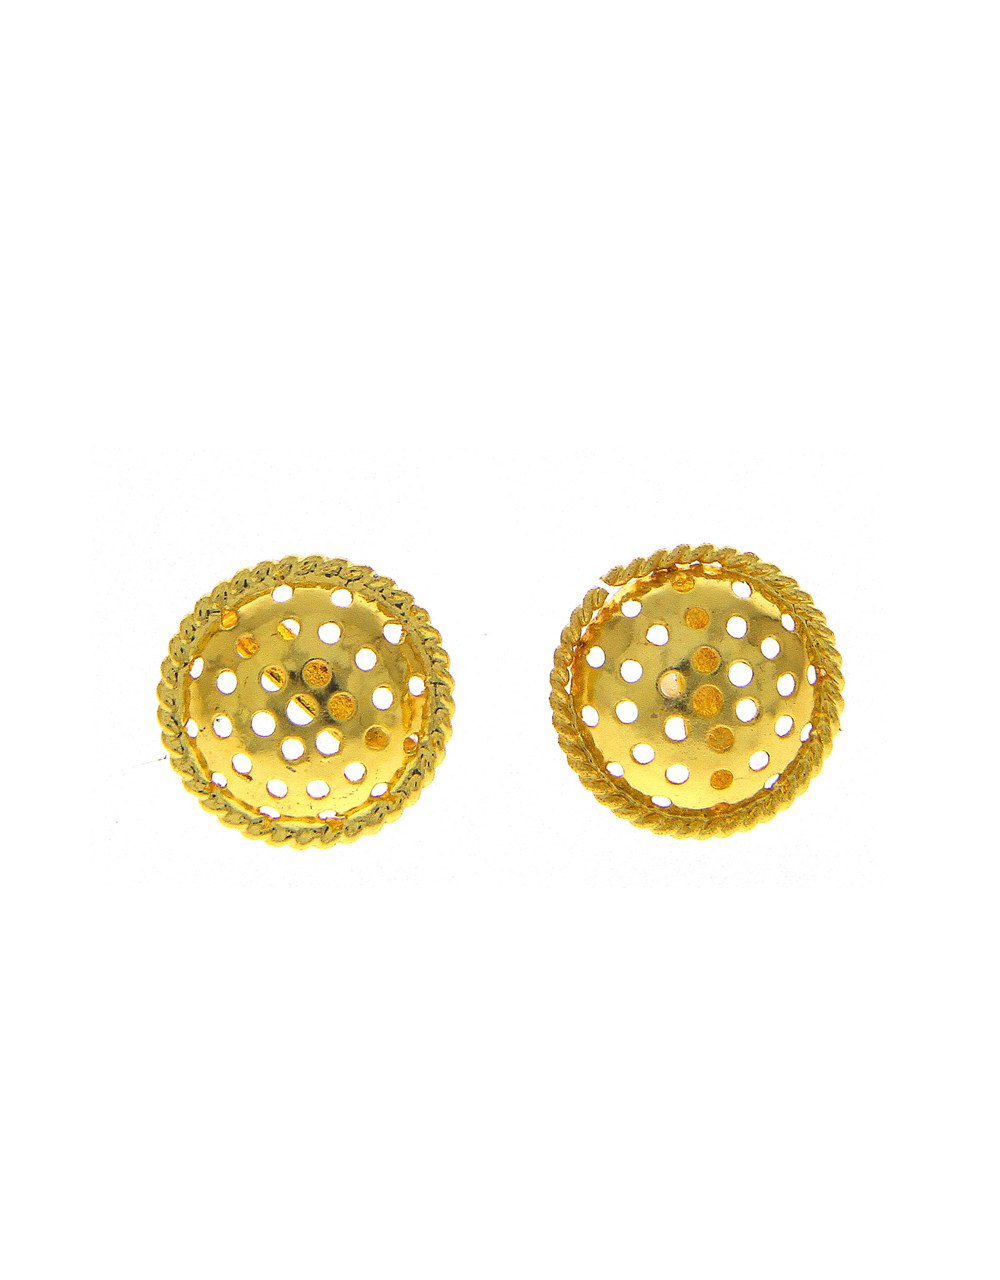 Gold Plated Ear Tops Base